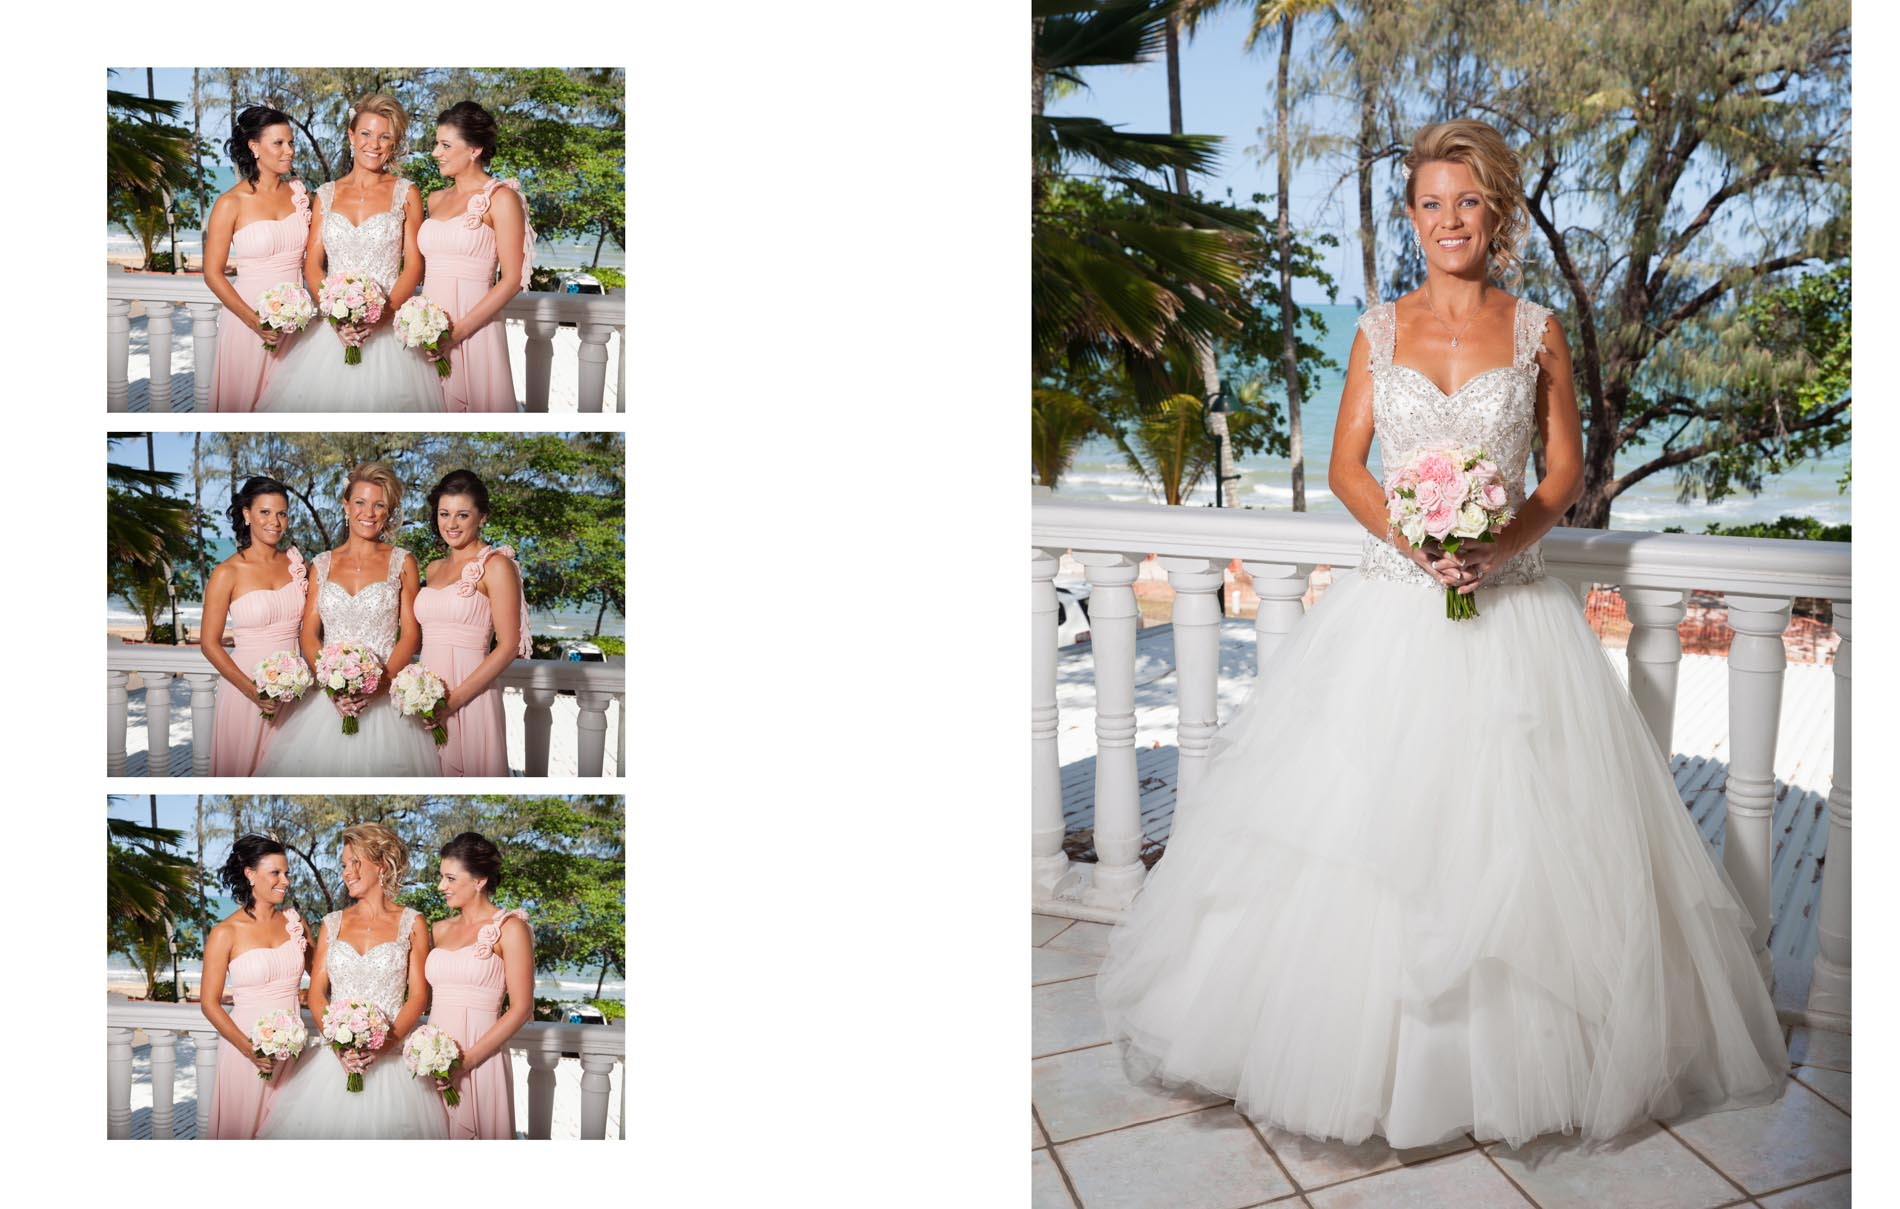 Palm Cove wedding photography by nathan david kelly one of Cairns best wedding photographers